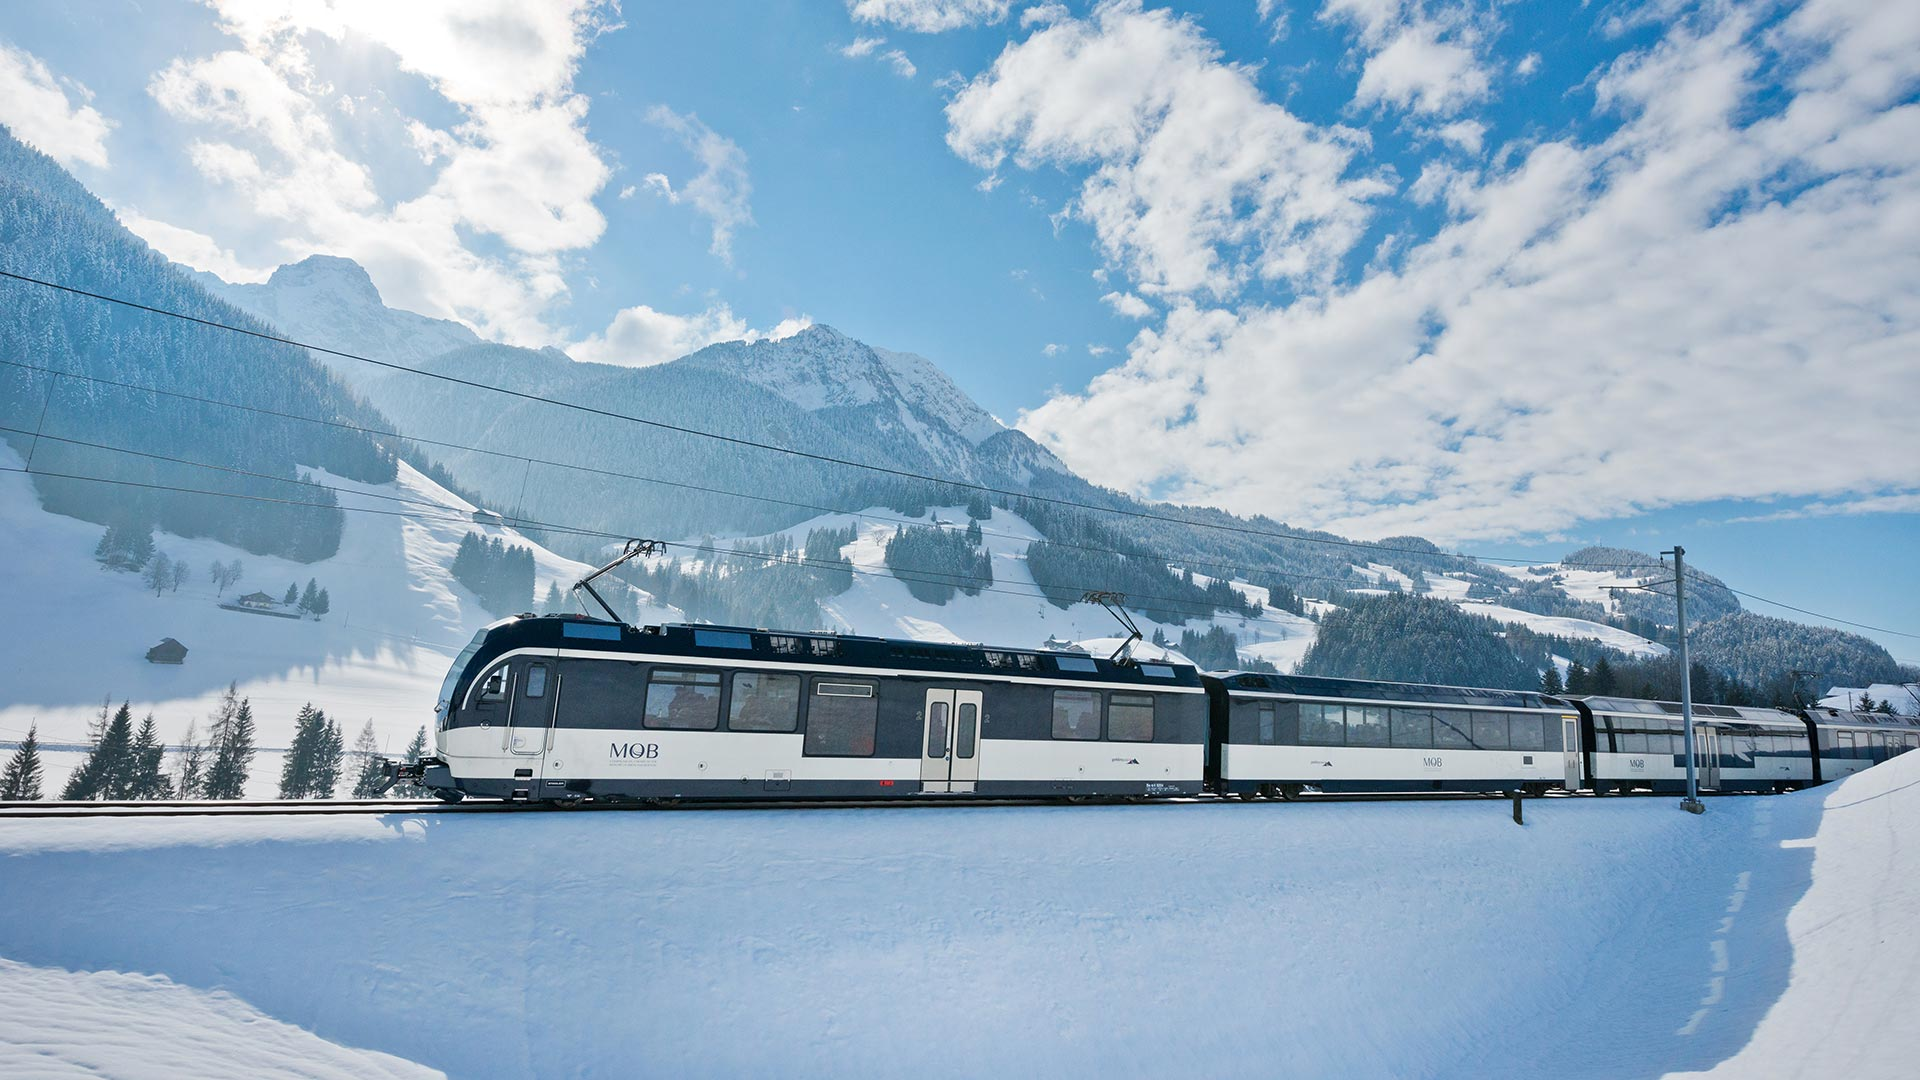 goldenpass-mob-zug-winter